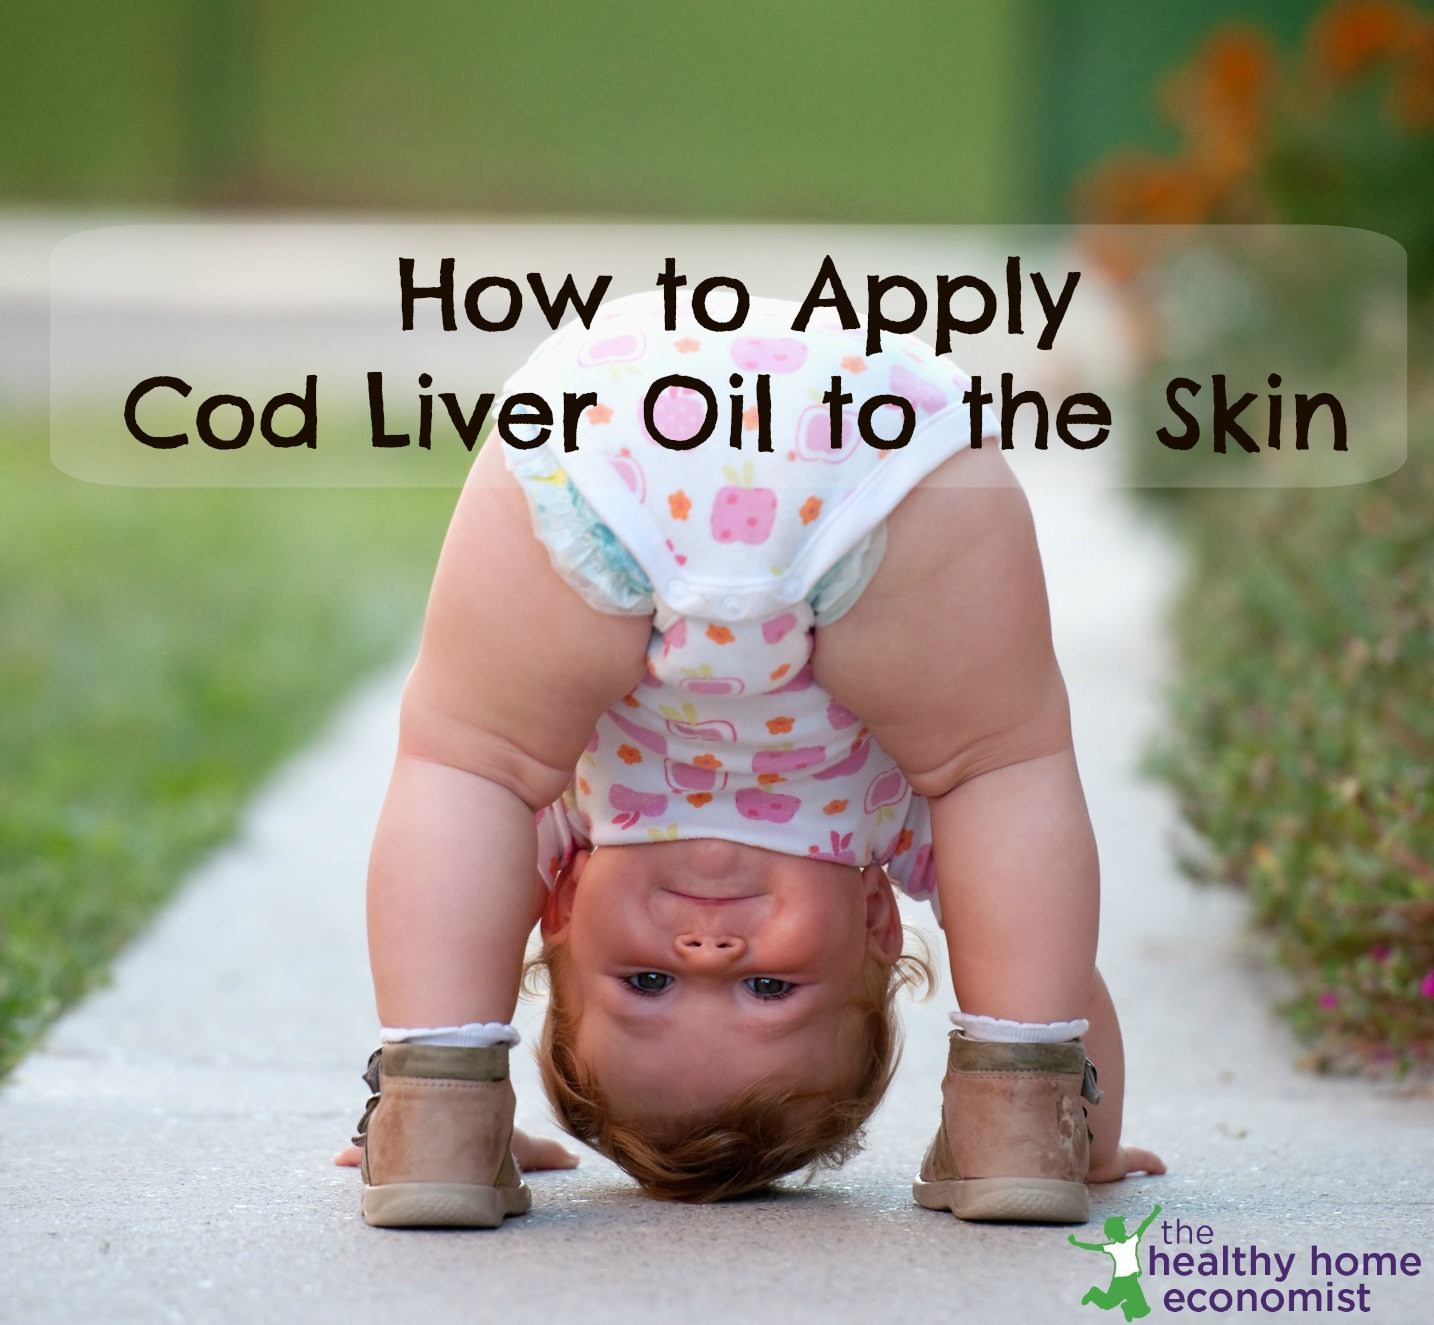 apply cod liver oil